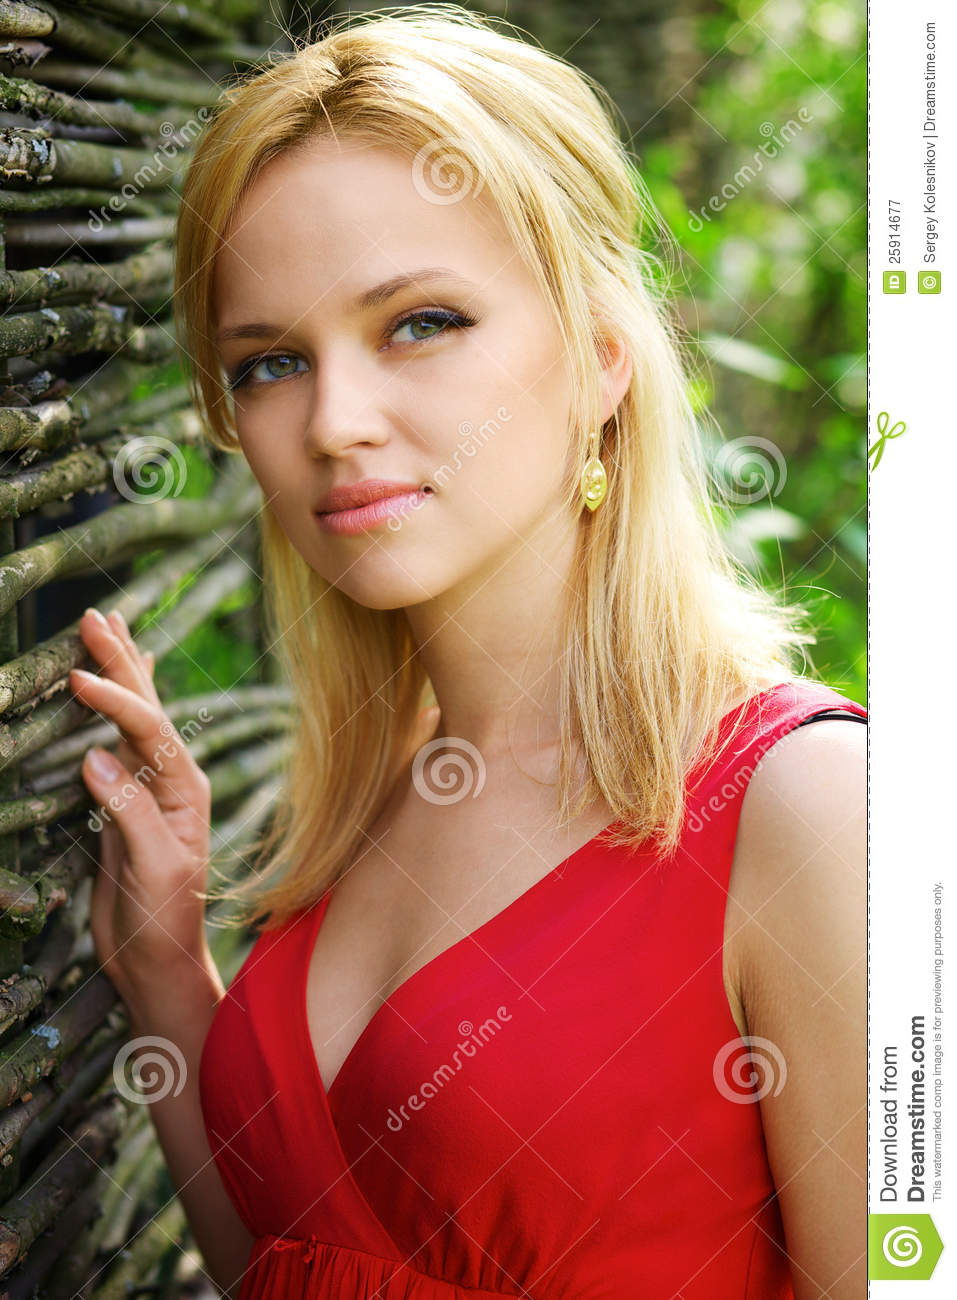 Young Beautiful Blonde Woman Royalty Free Stock ...